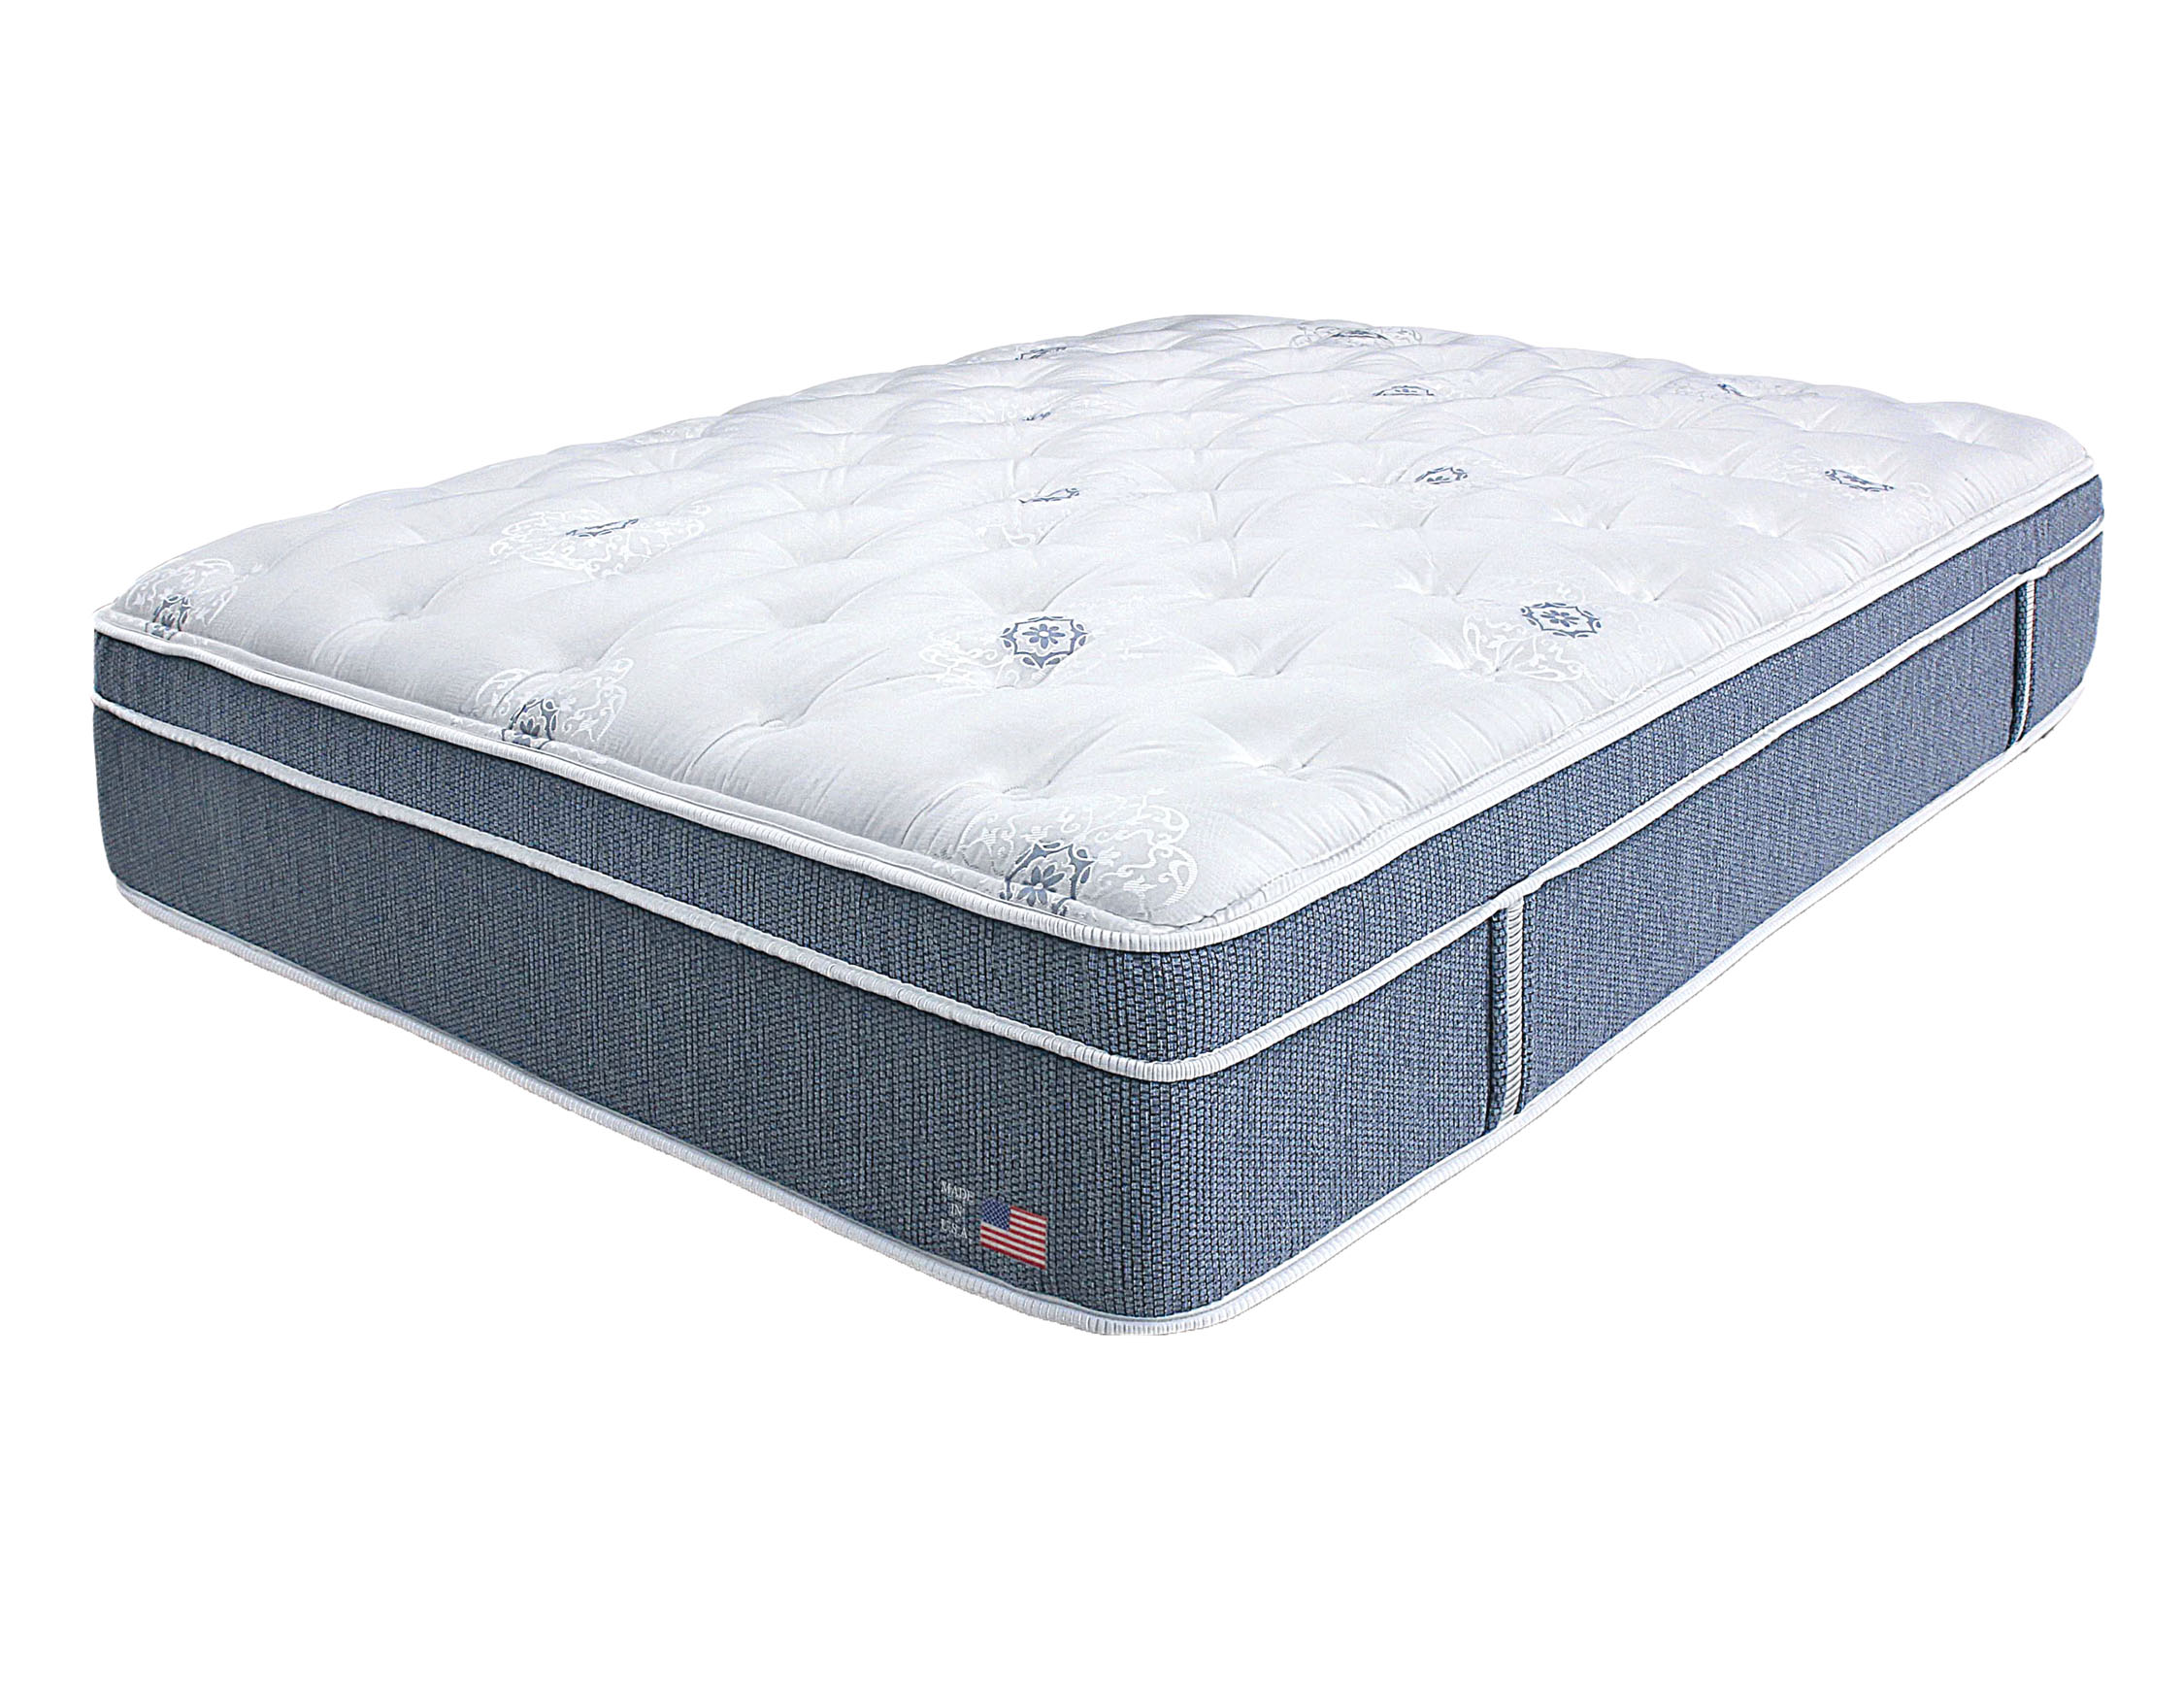 Baby Mattress Kmart Twin Mattress Kmart Captivating Bunk Bed Mattress Twin